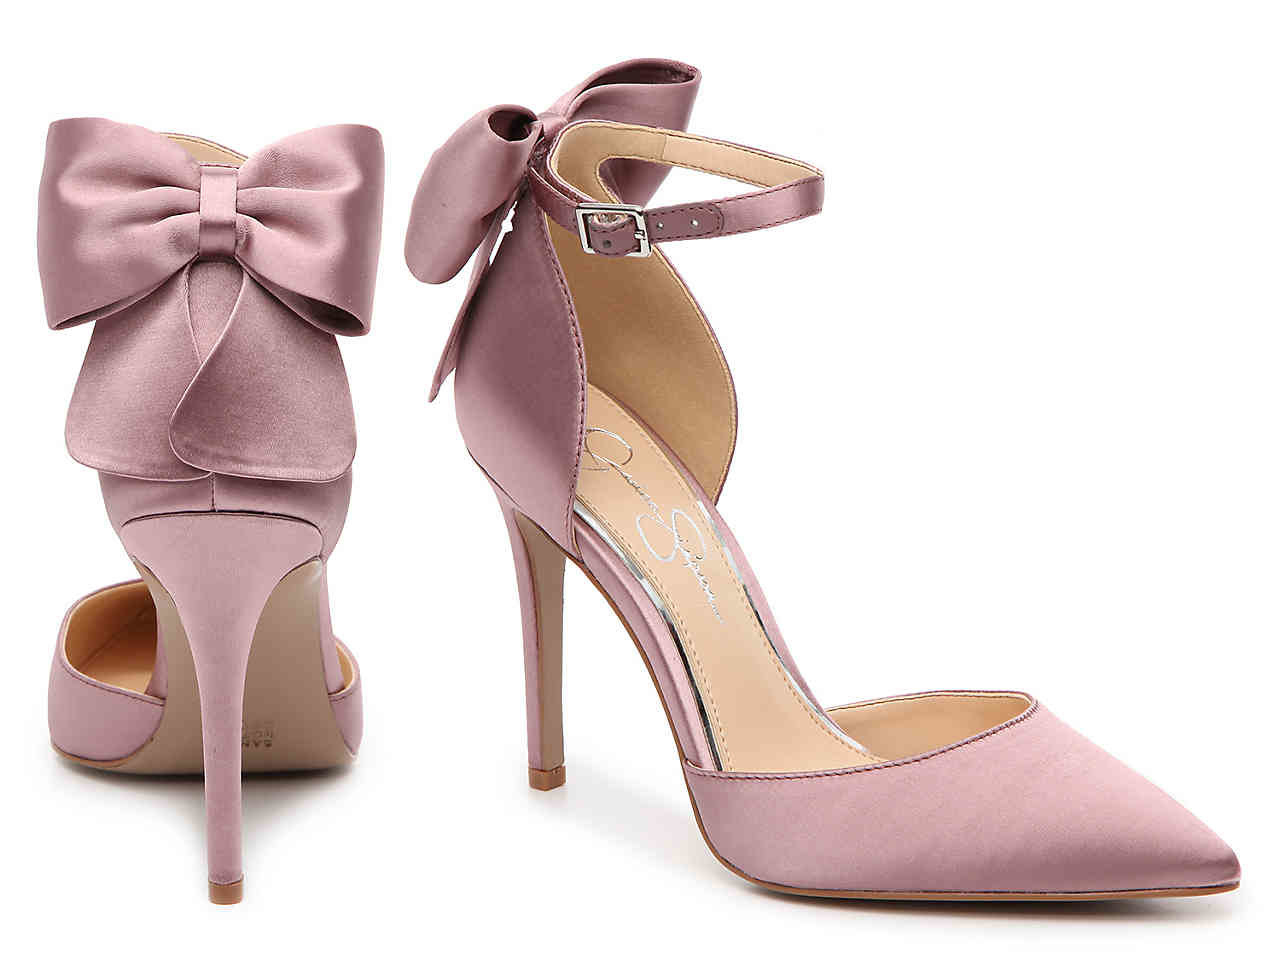 32 Pairs Of Cute Heels That Are